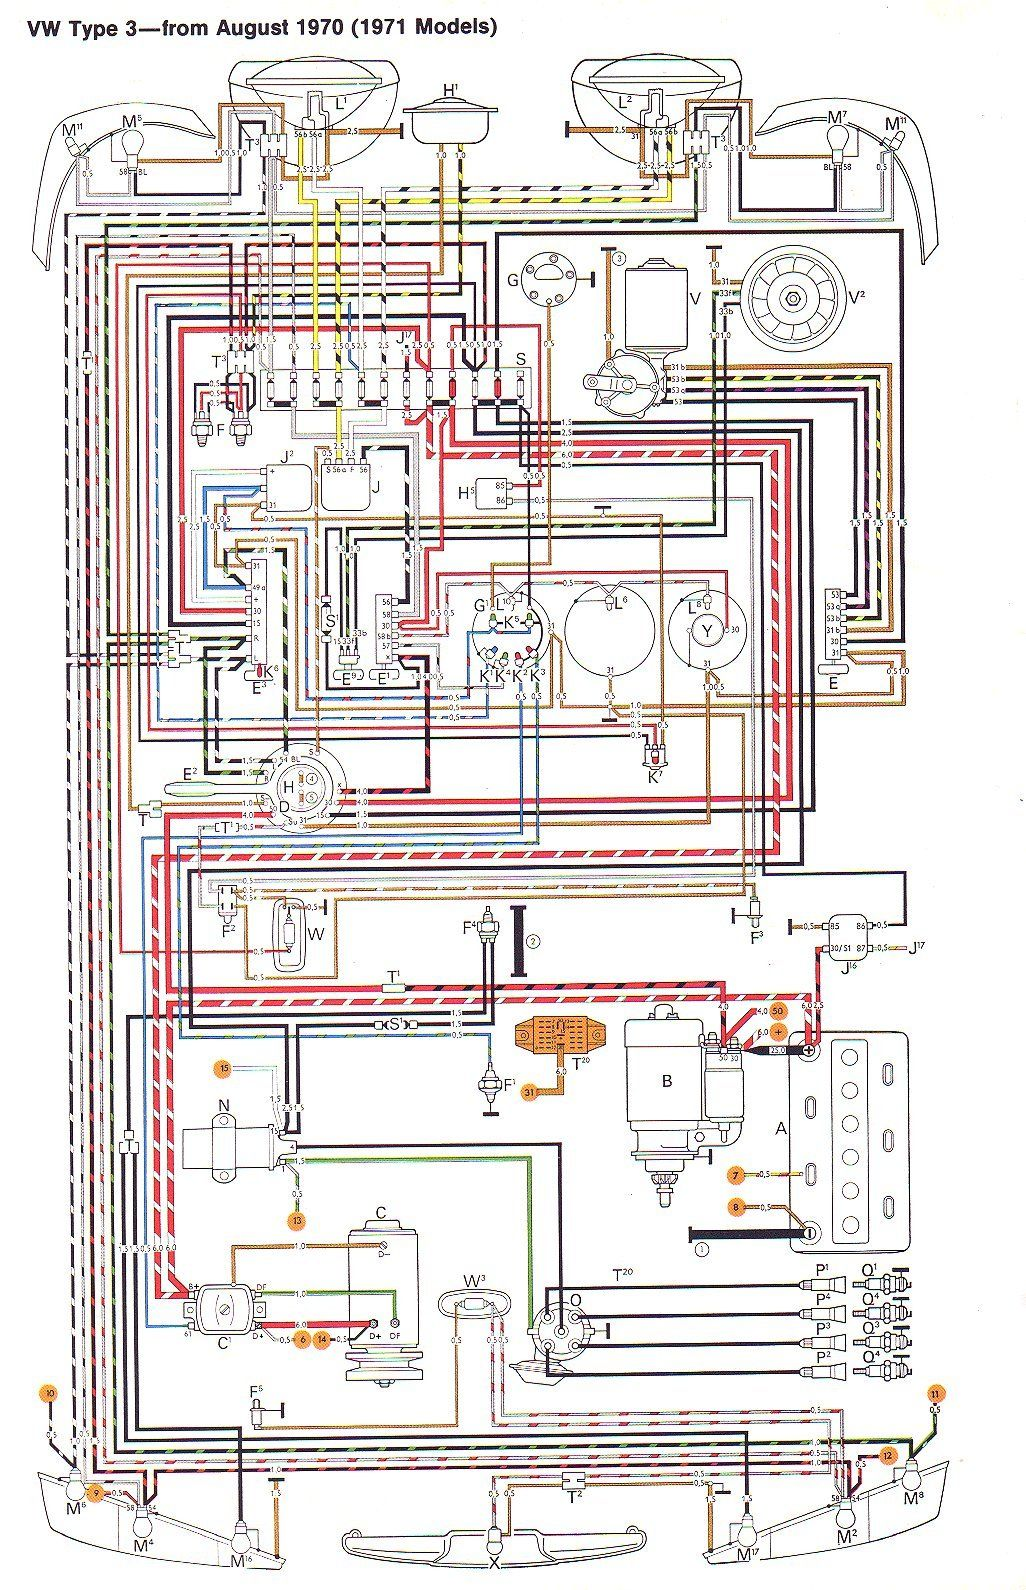 e0db58370f79a63d02d45f00cf63f44a 71 vw t3 wiring diagram ruthie pinterest volkswagen, engine vw engine wiring diagram at webbmarketing.co